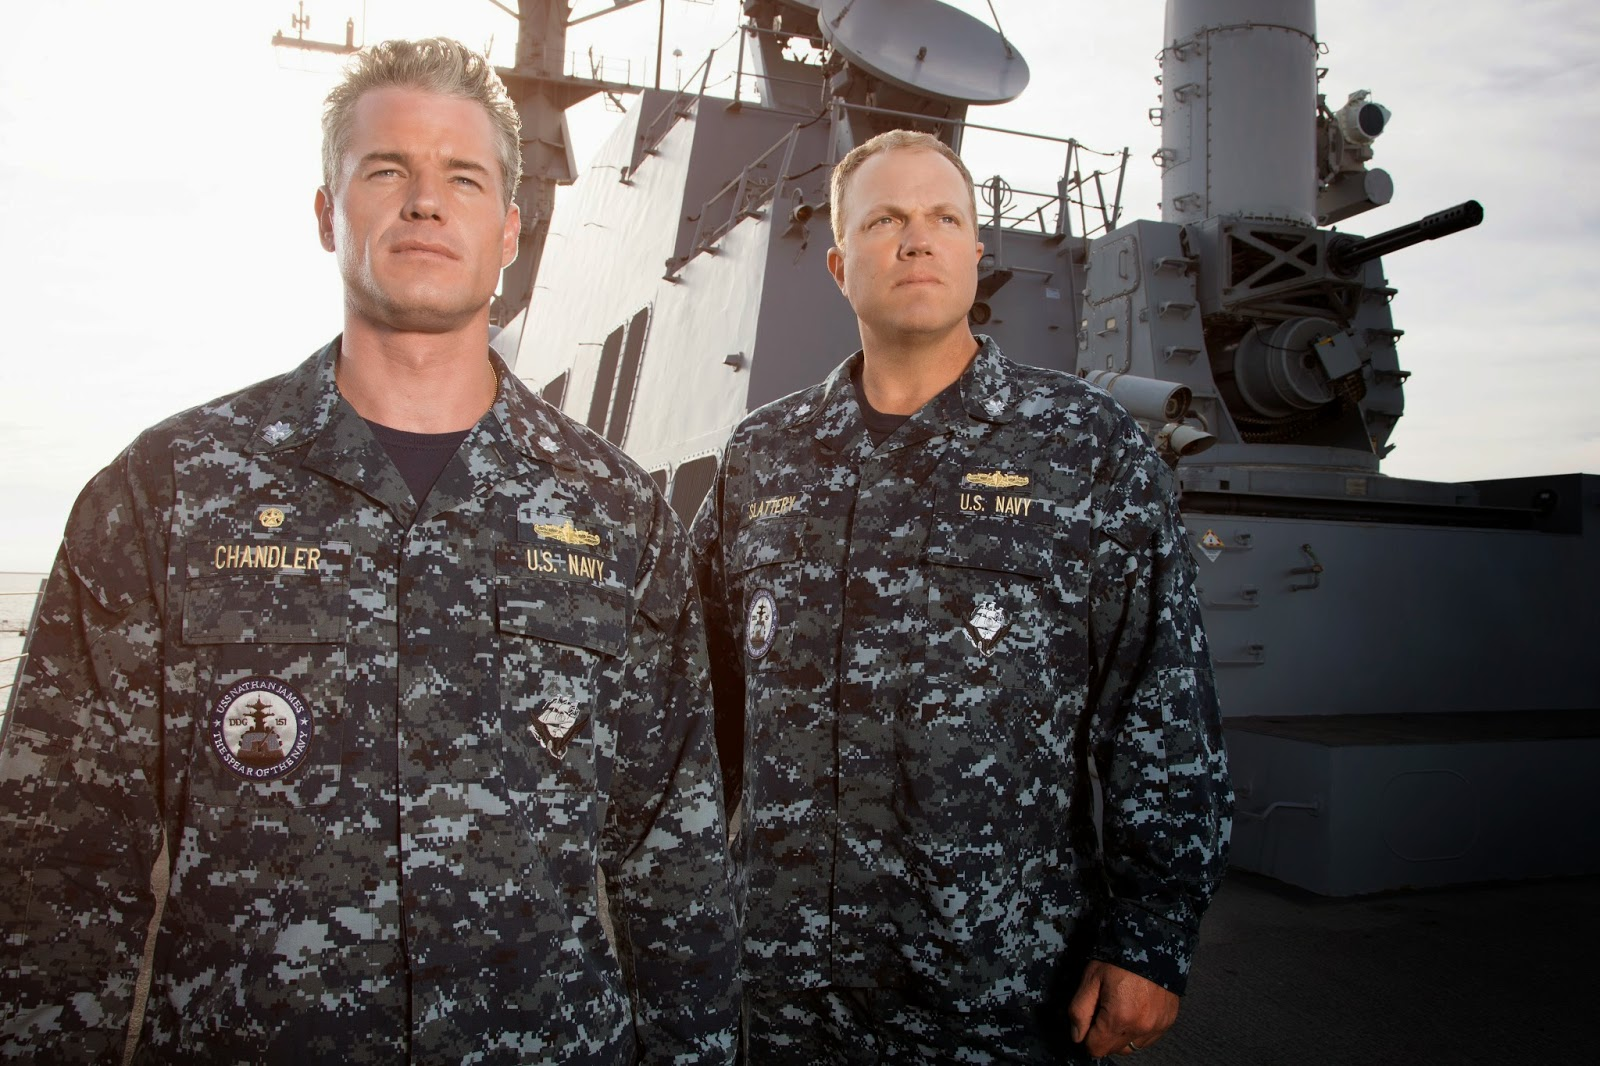 Eric Dane and Adam Baldwin of The Last Ship